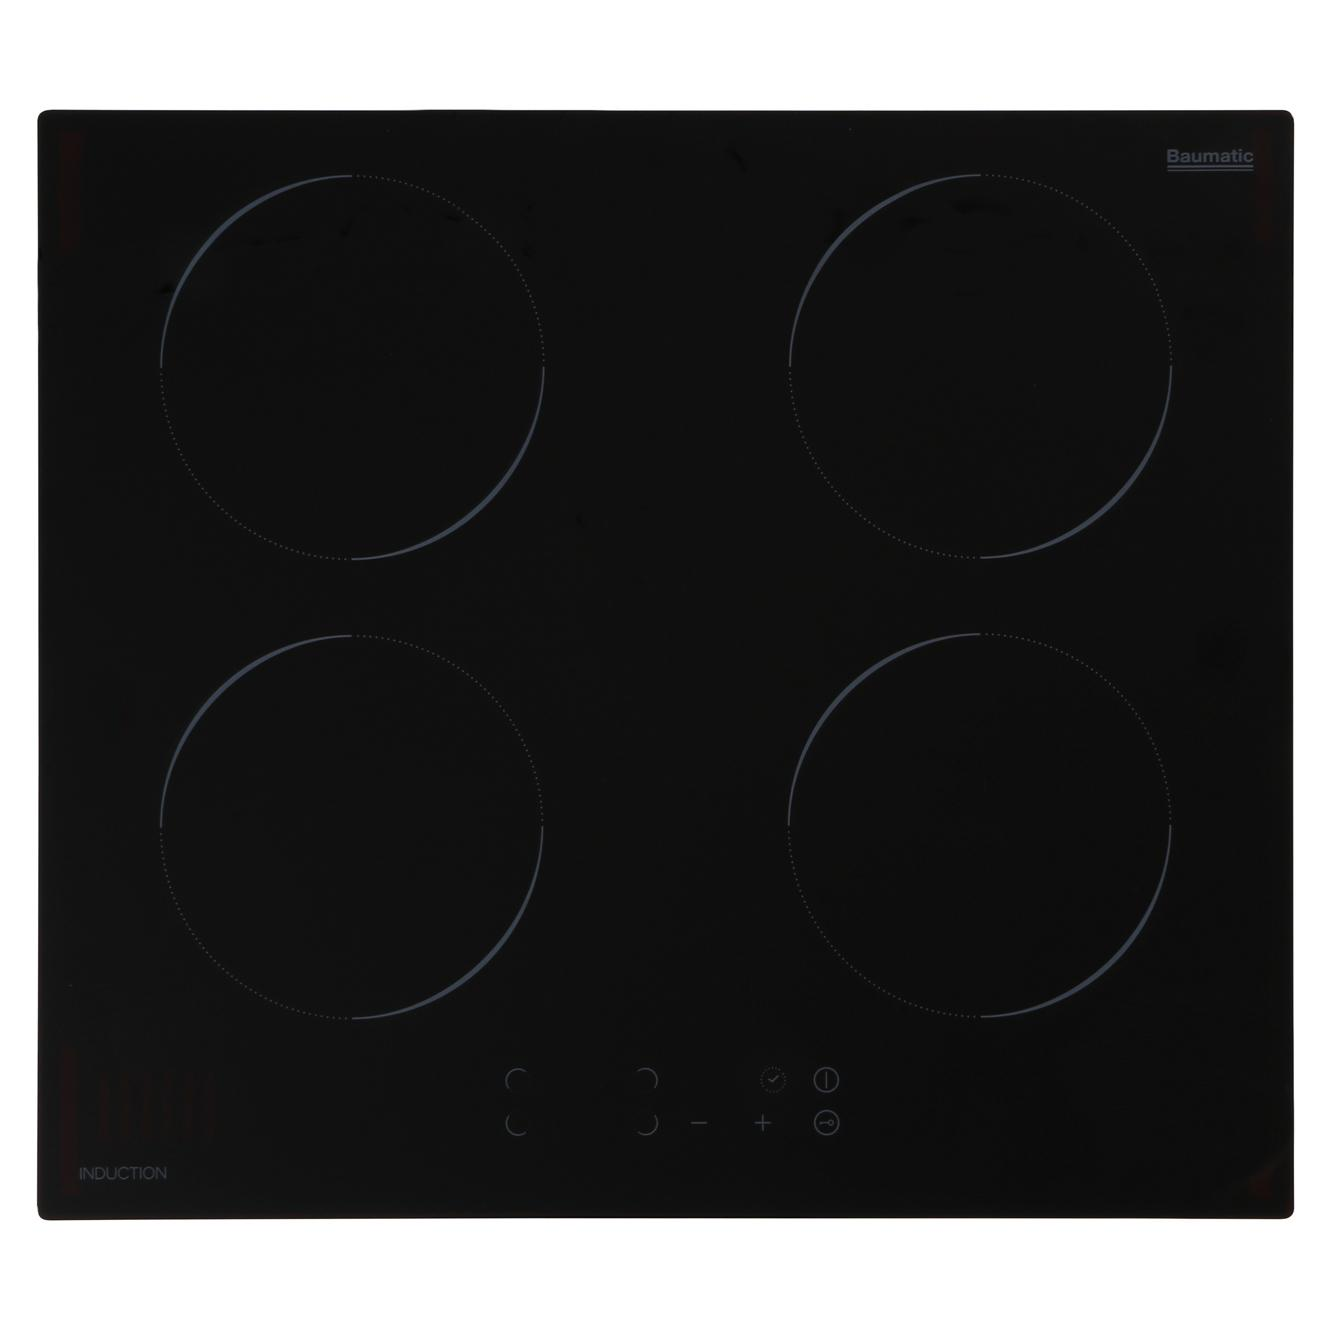 Baumatic BHII6013 Induction Hob